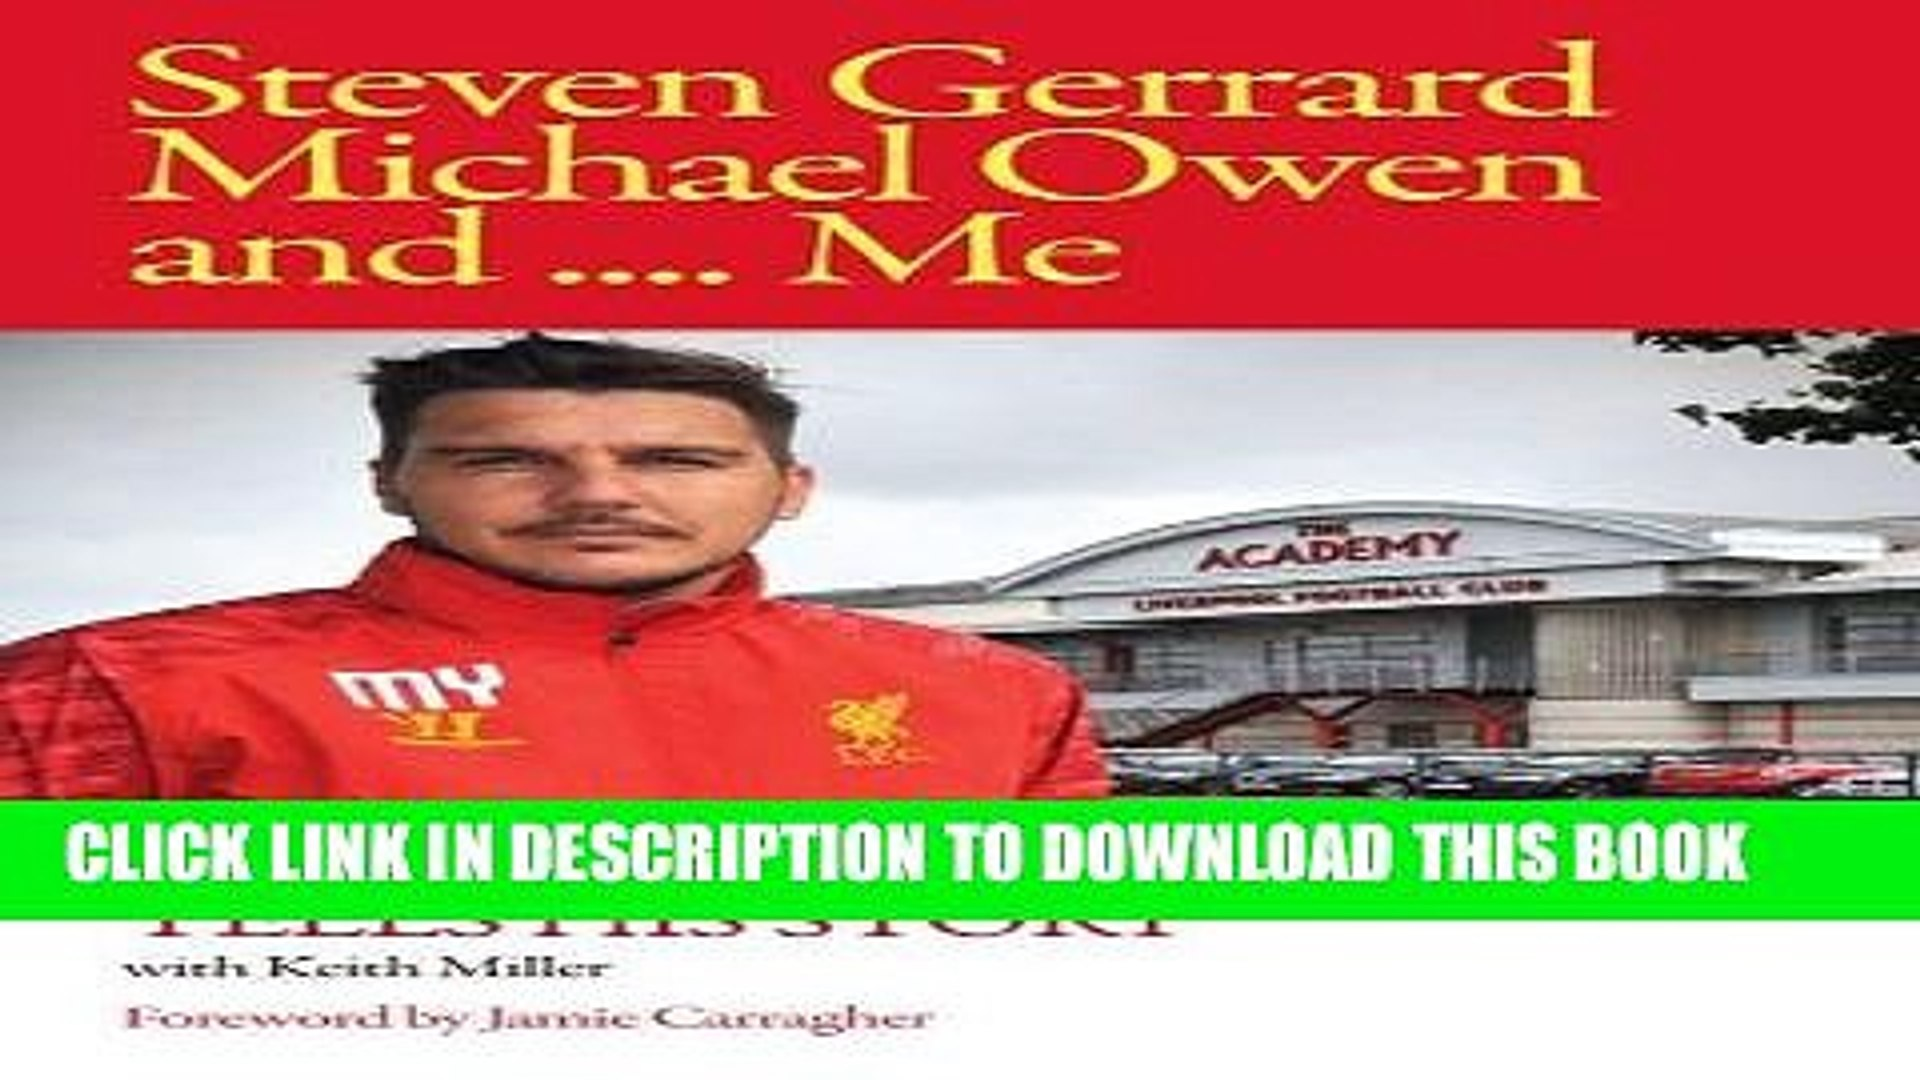 [PDF] Steven Gerrard, Michael Owen and Me.: Mike Yates Tells His Story Full Online